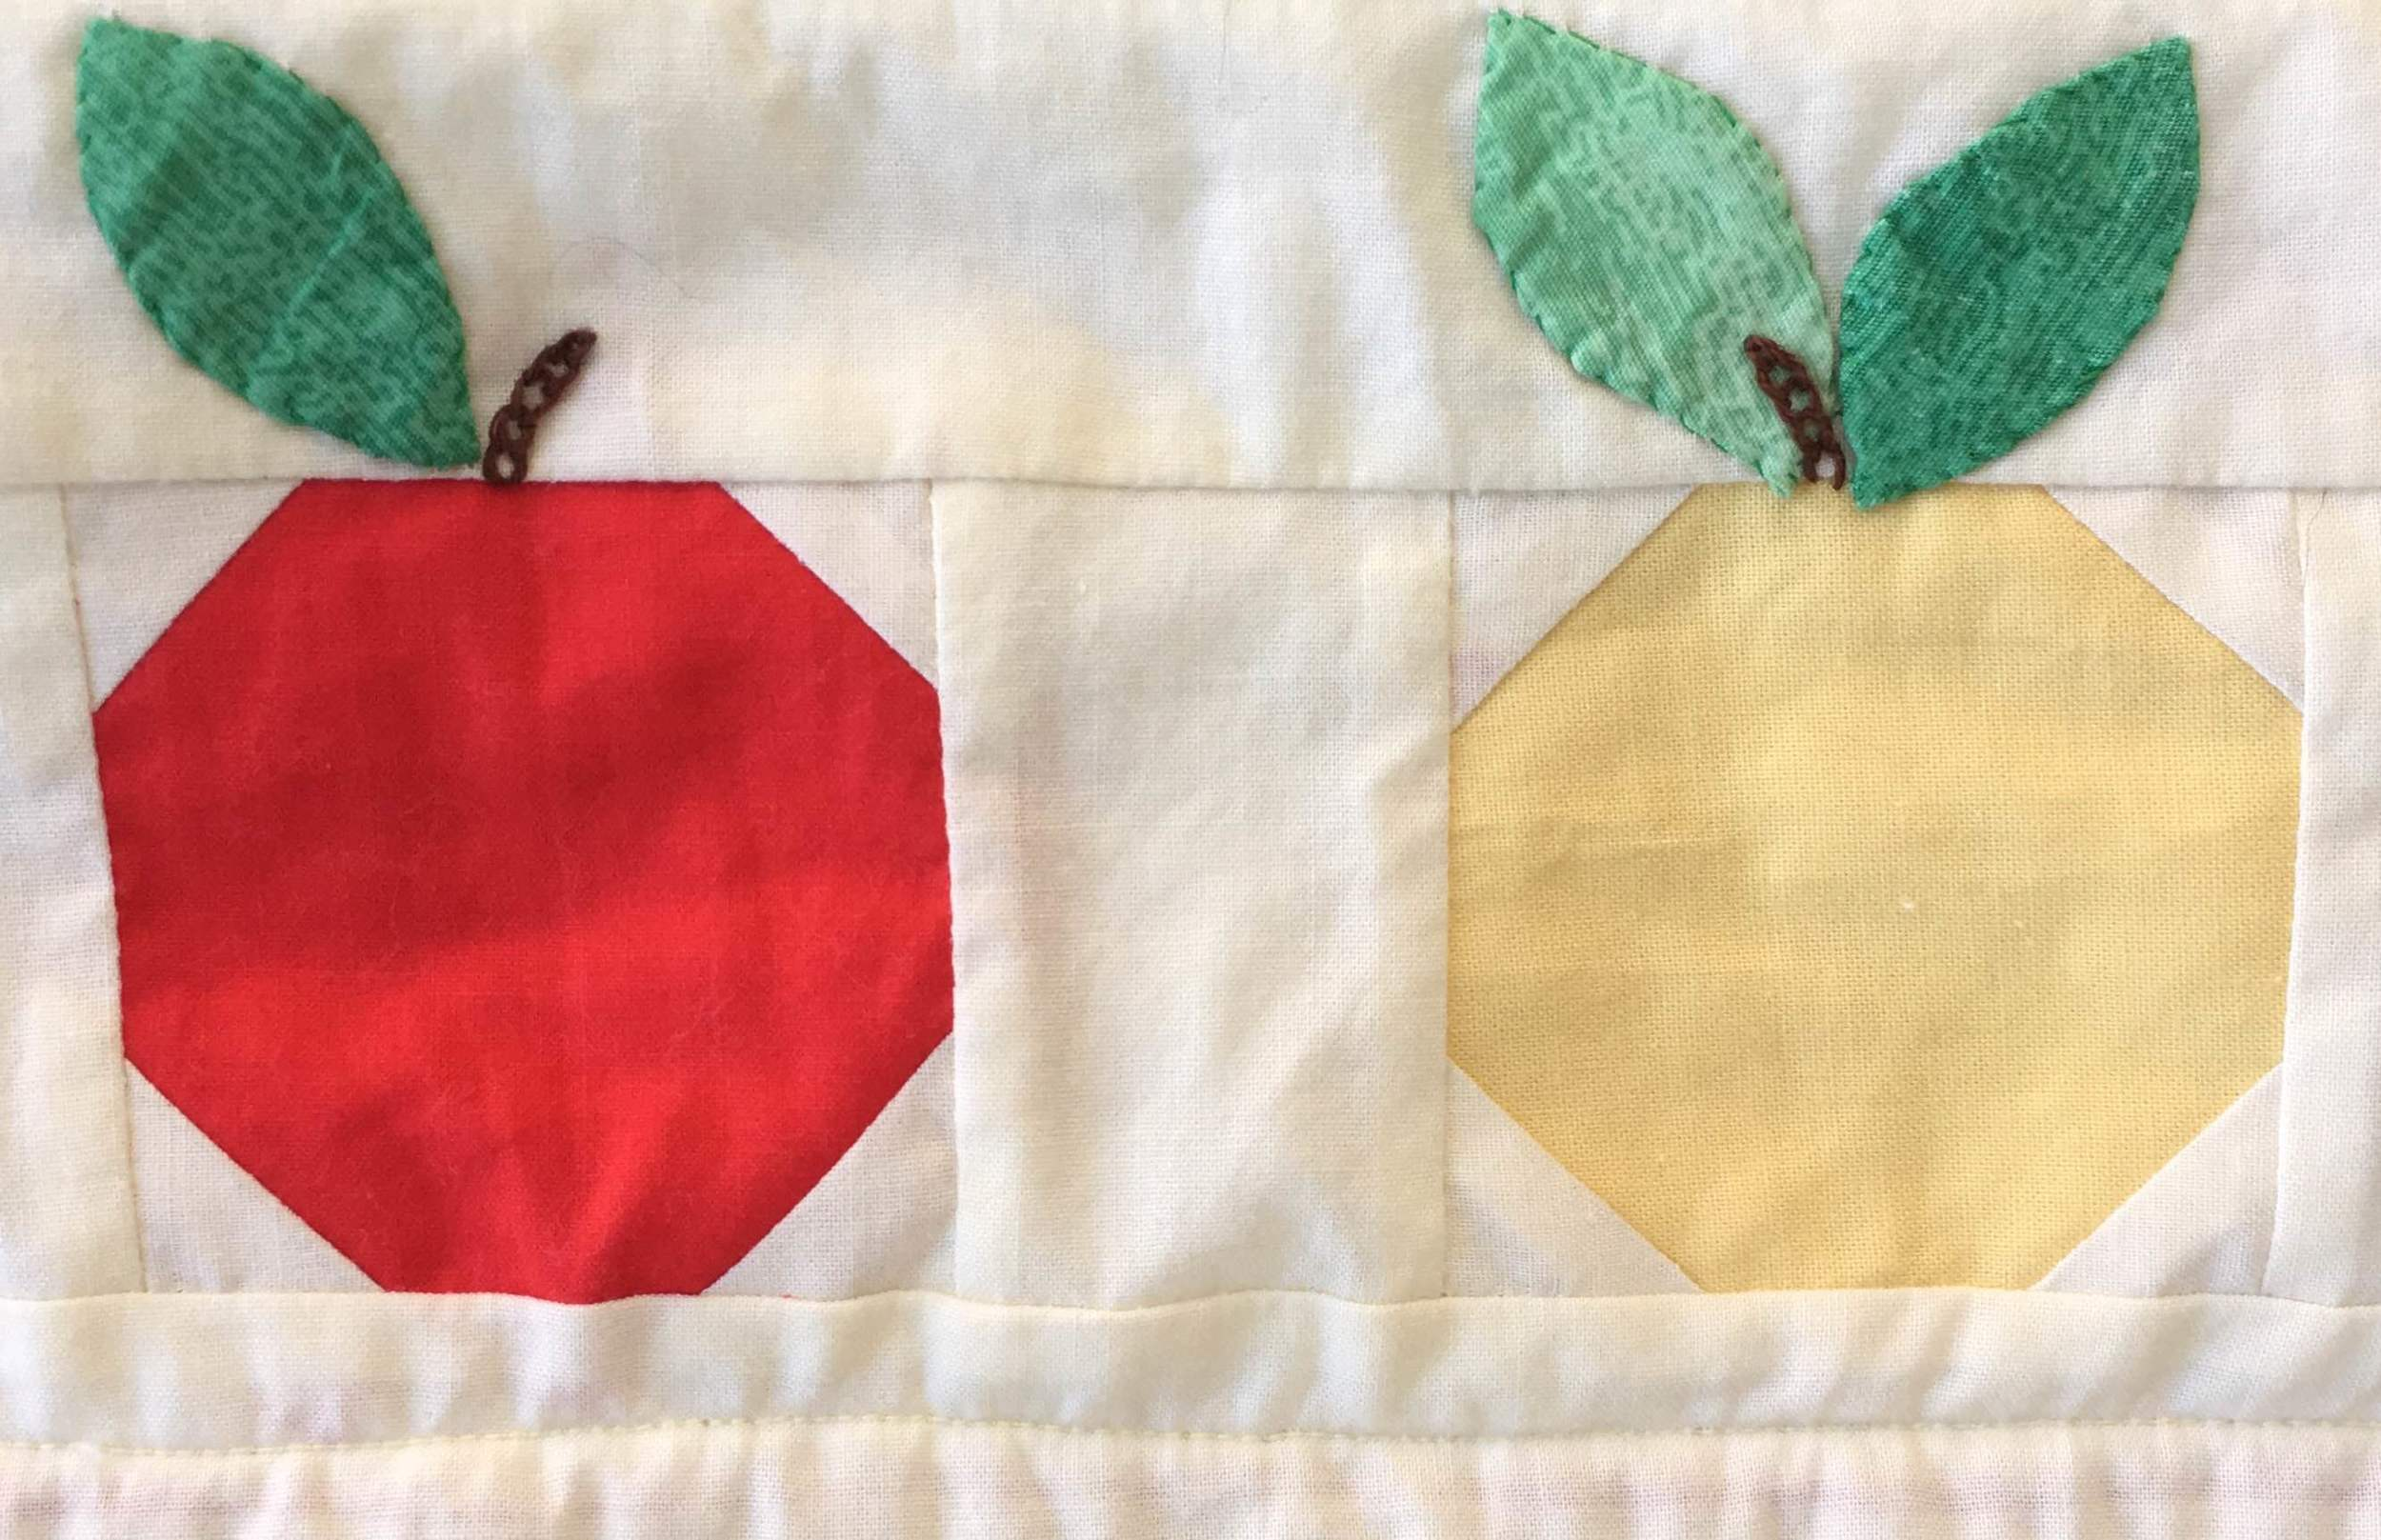 Quilt MQ 9 Tranquility Apple Detail.jpg